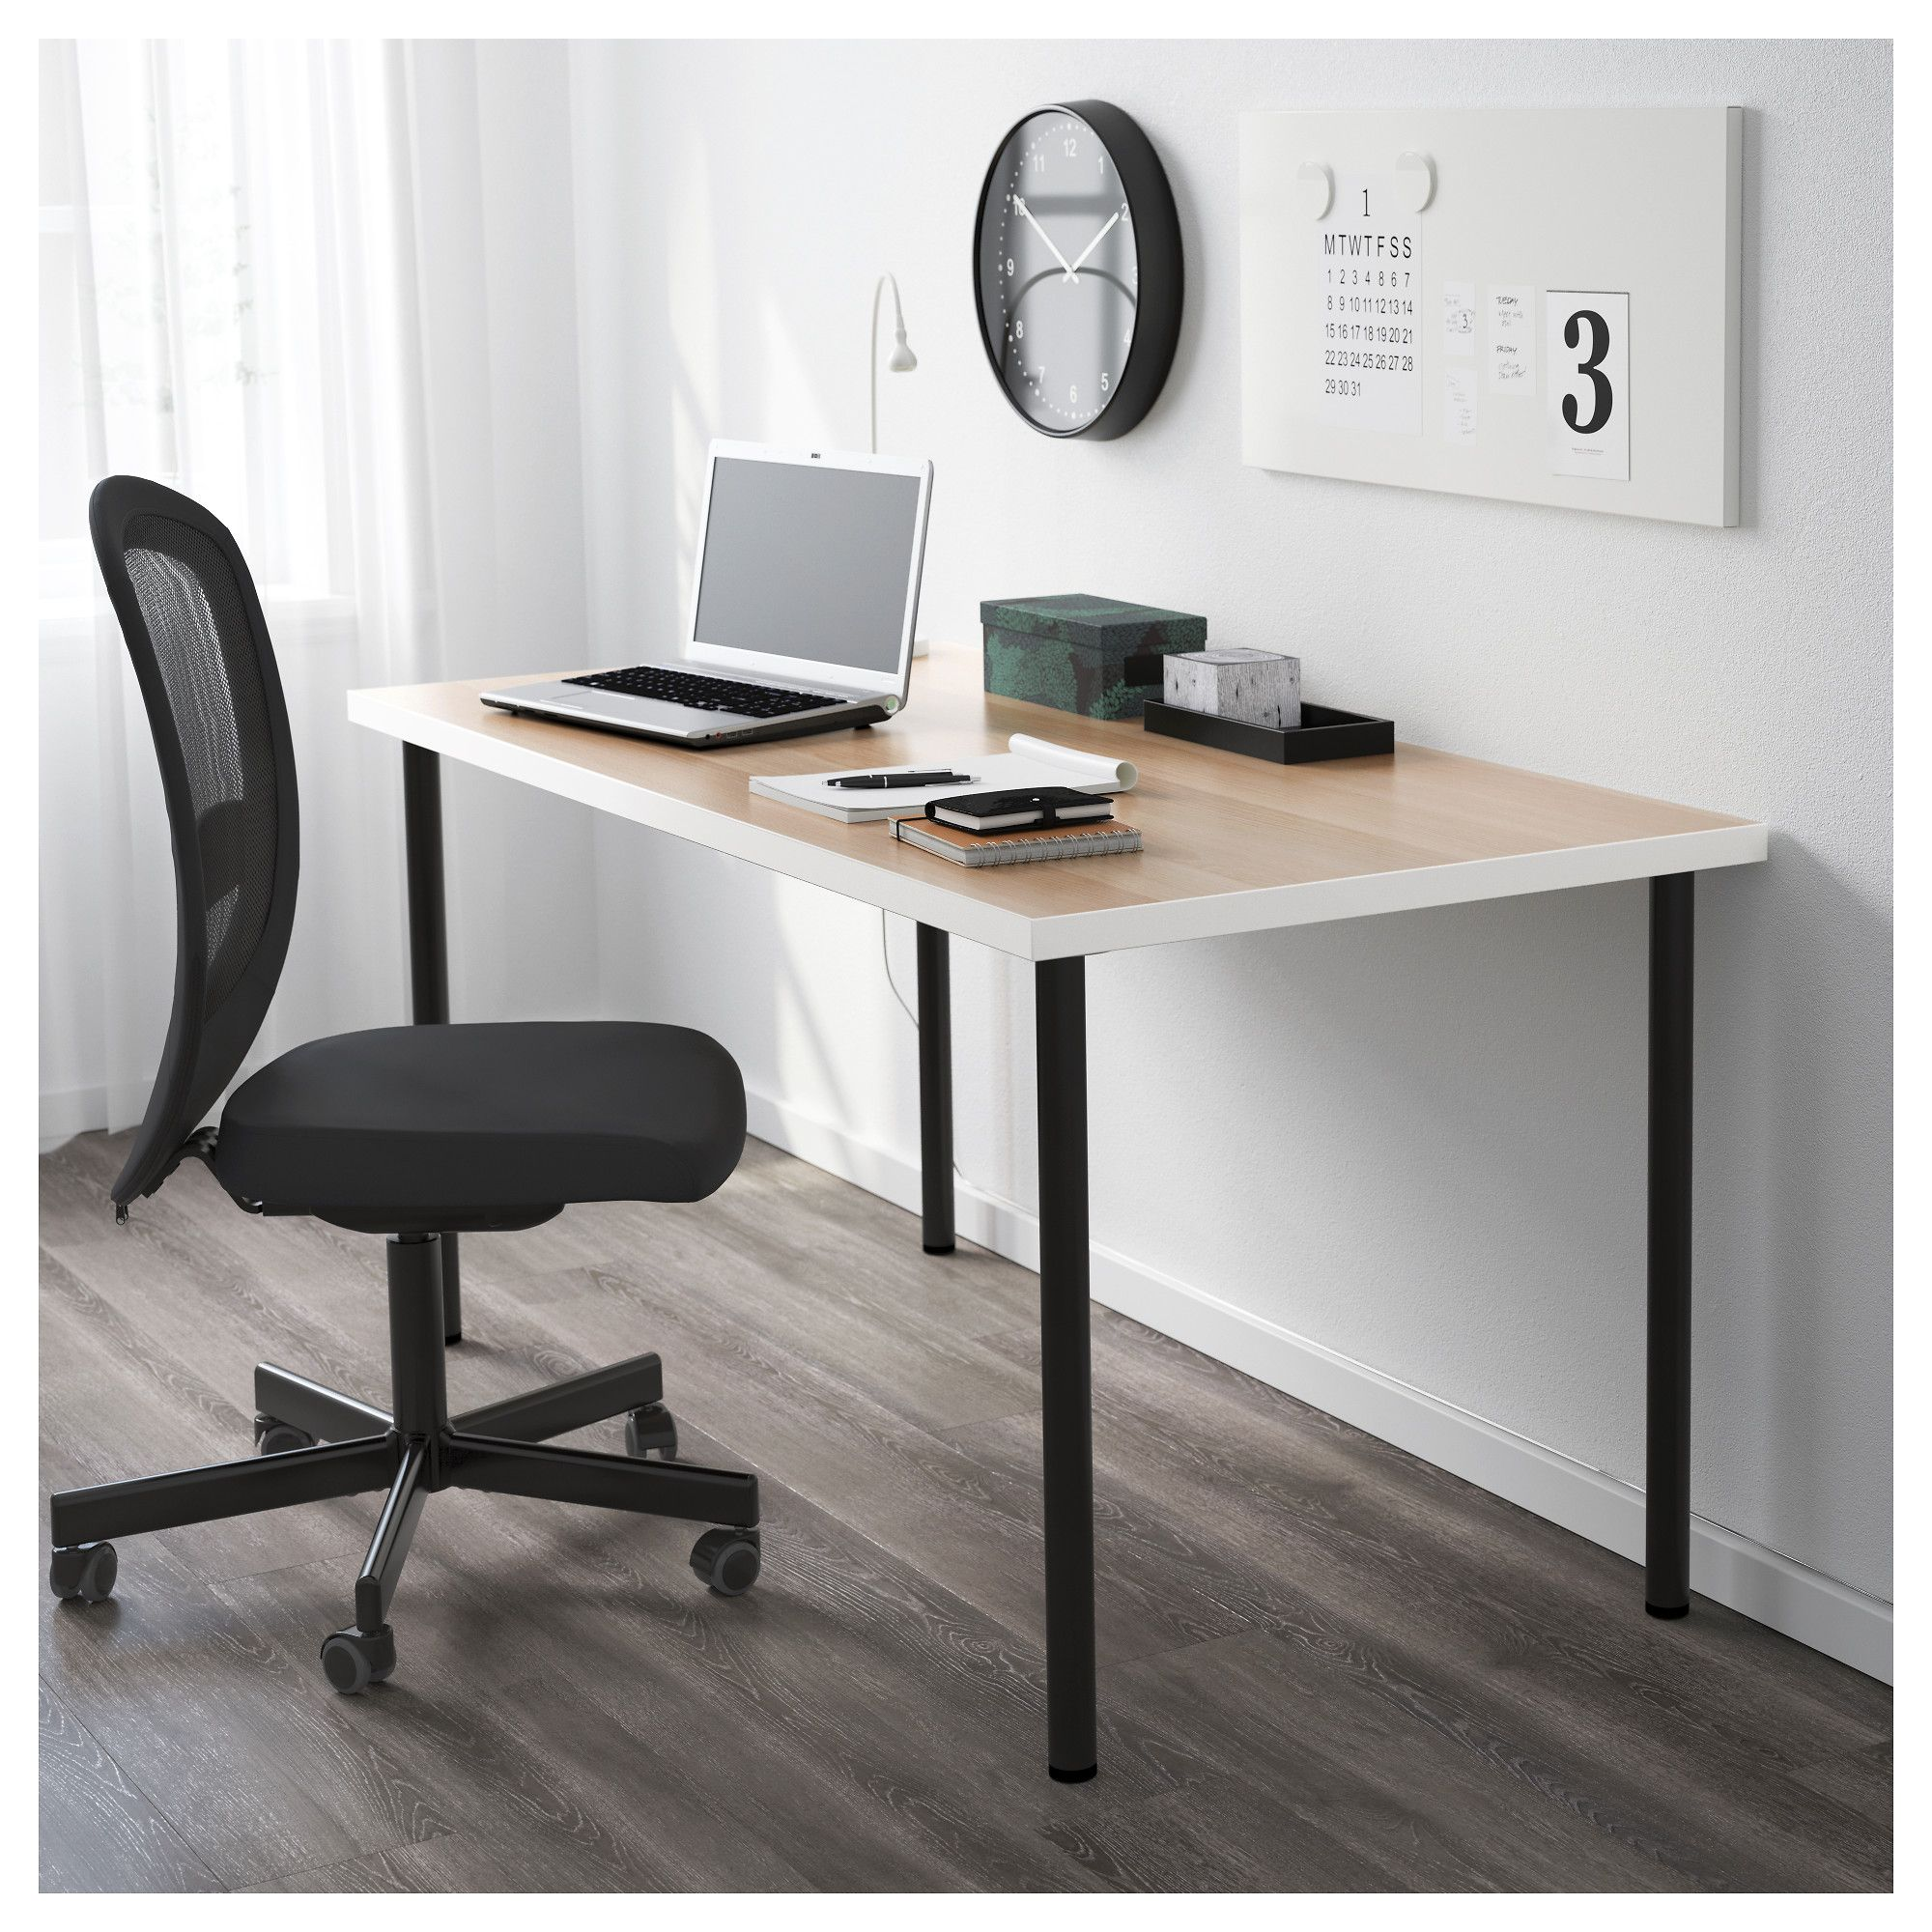 Linnmon Ikea Linnmon Adils Table White Stained Oak Effect Black